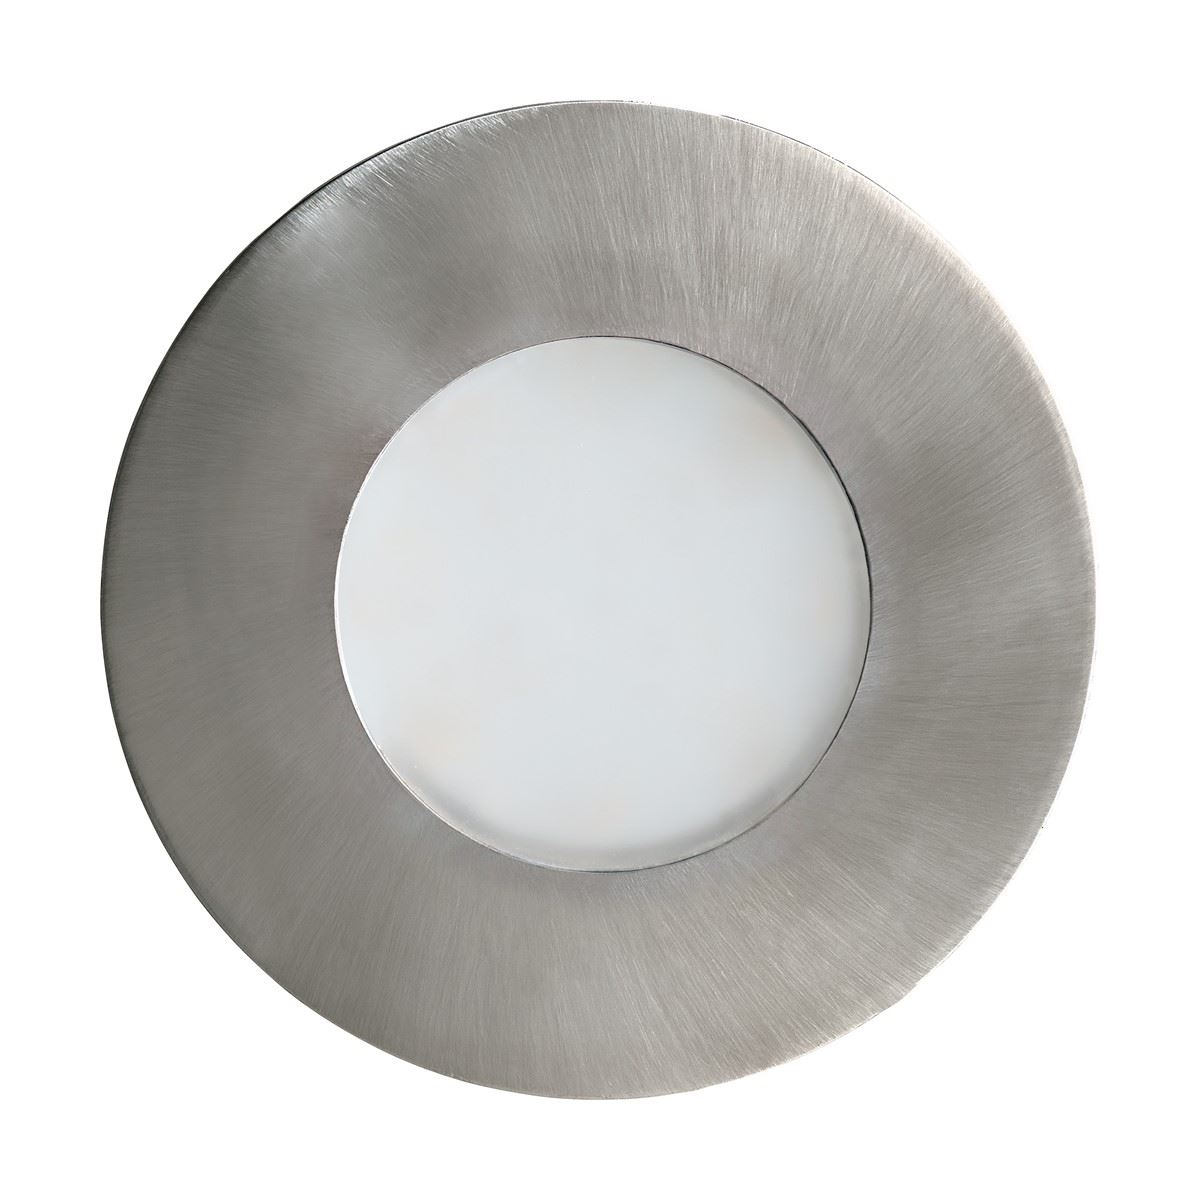 EGLO Margo Outdoor Round Recessed Lamp Ceiling Light In Stainless Steel/Silver